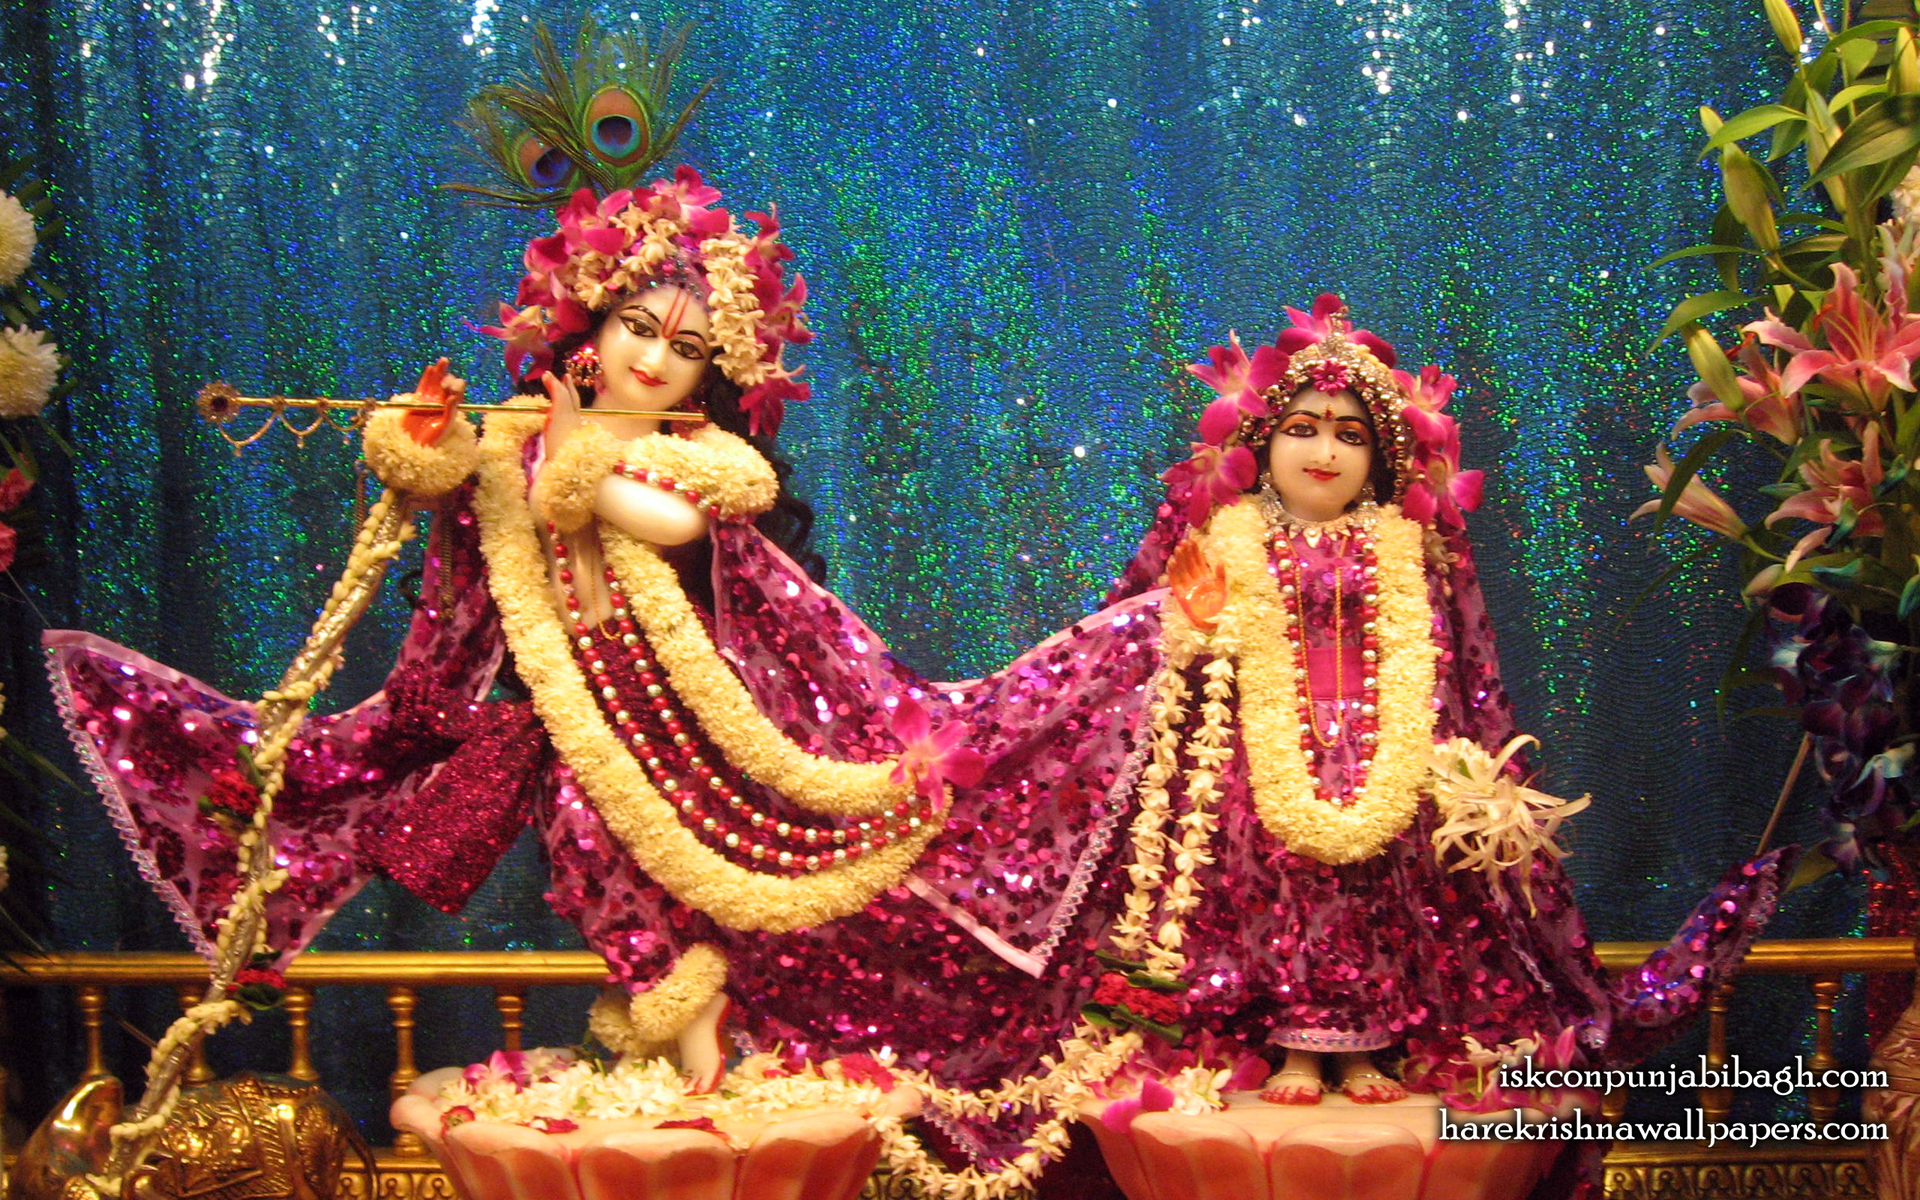 Sri Sri Radha Radhikaraman Wallpaper (004) Size 1920x1200 Download